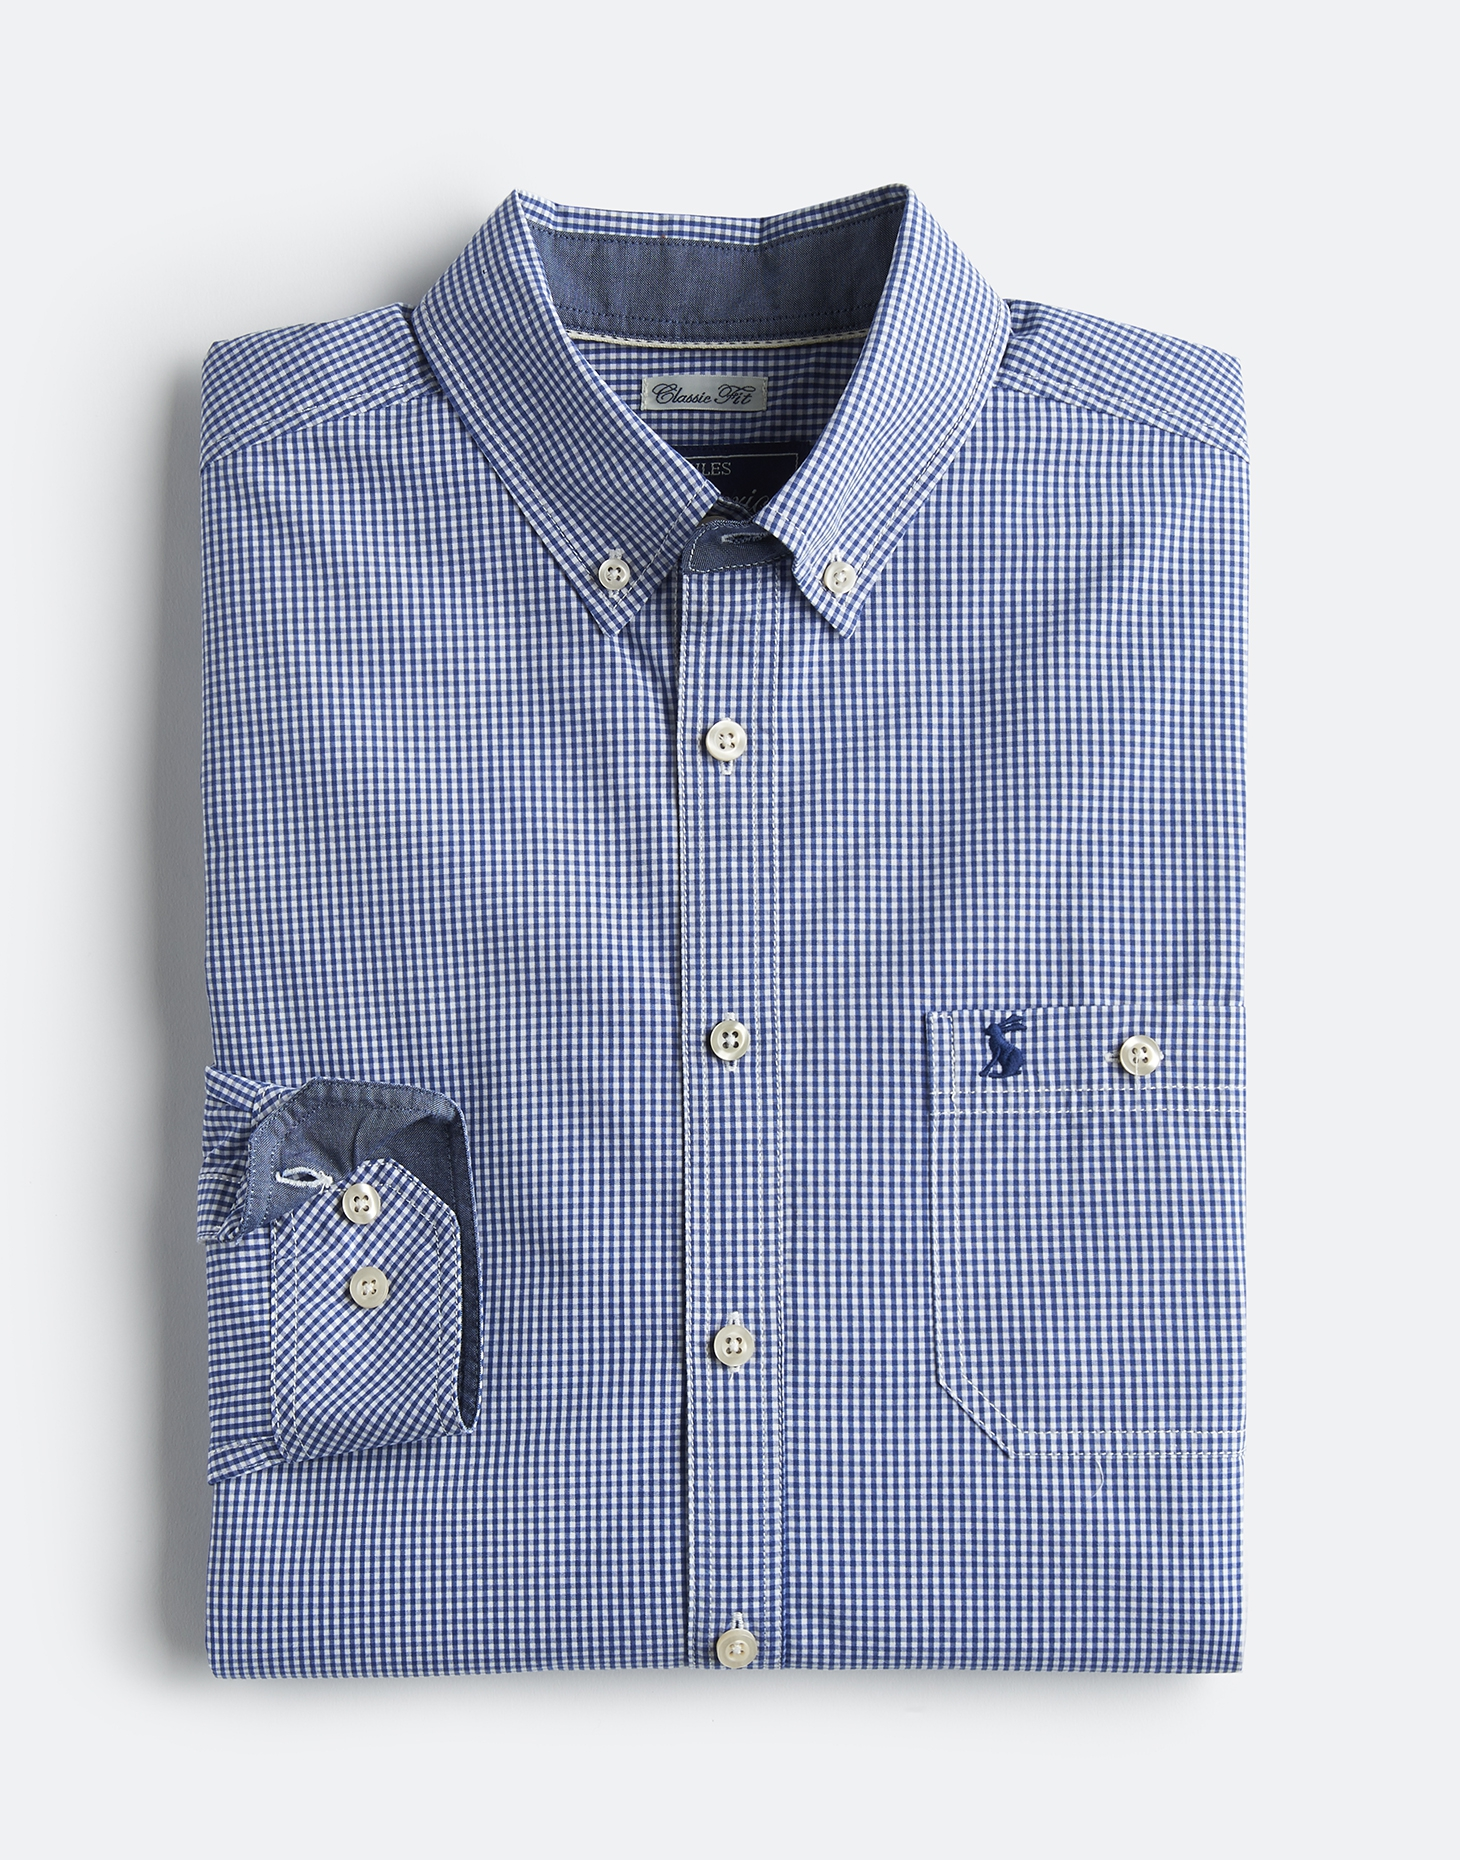 Joules BLUE GINGHAM HEWNEY CLASSIC FIT Checked Shirt